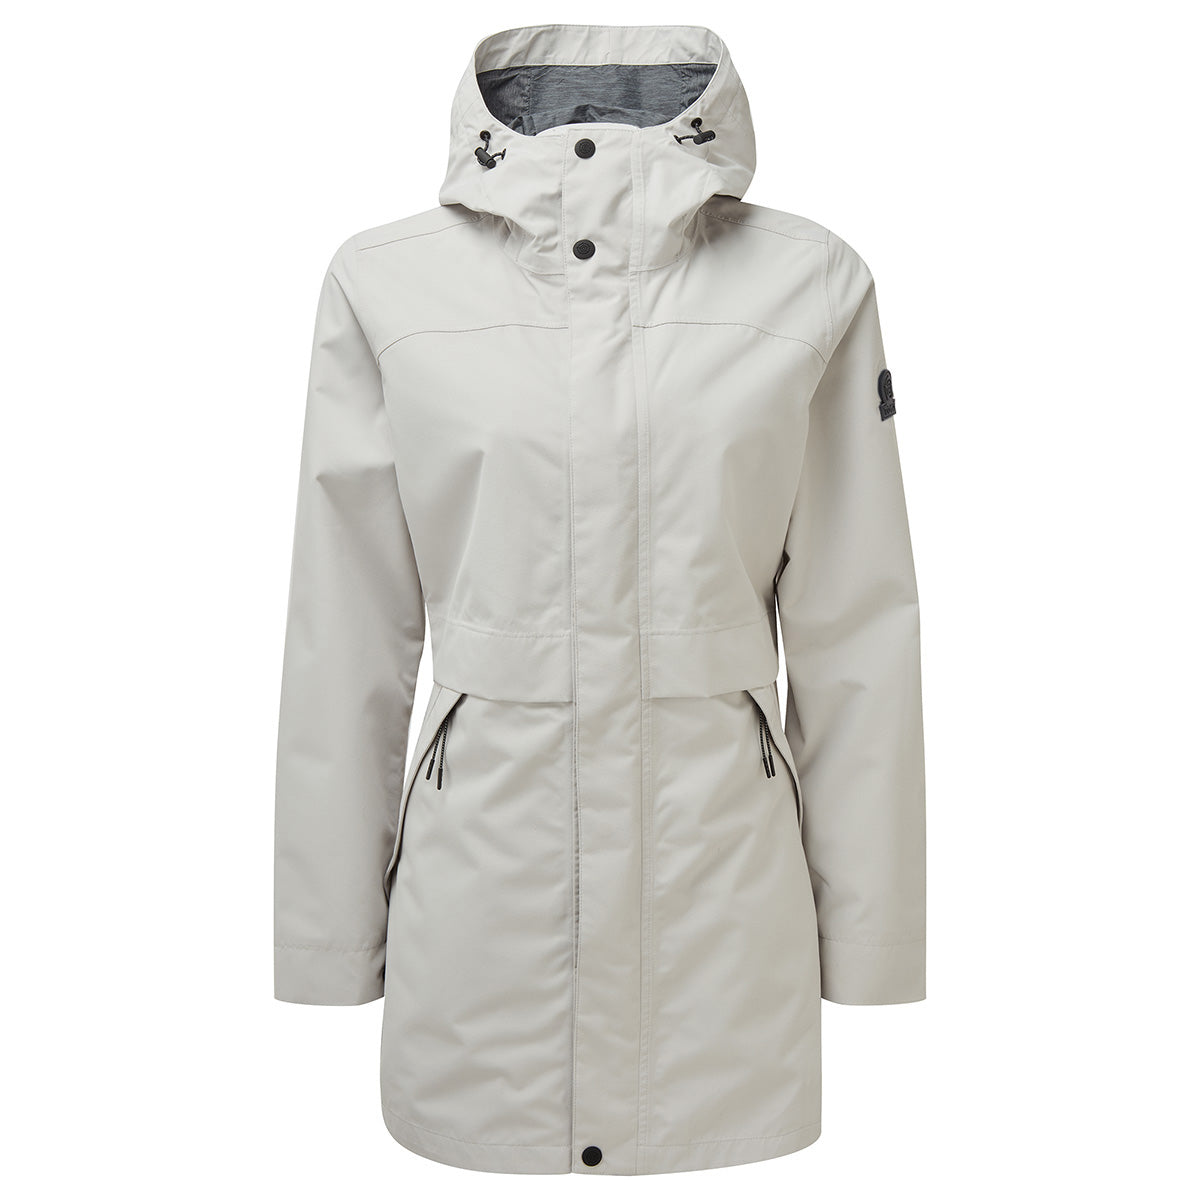 cc0478924 Waterproof coats and jackets for all the family: TOG24